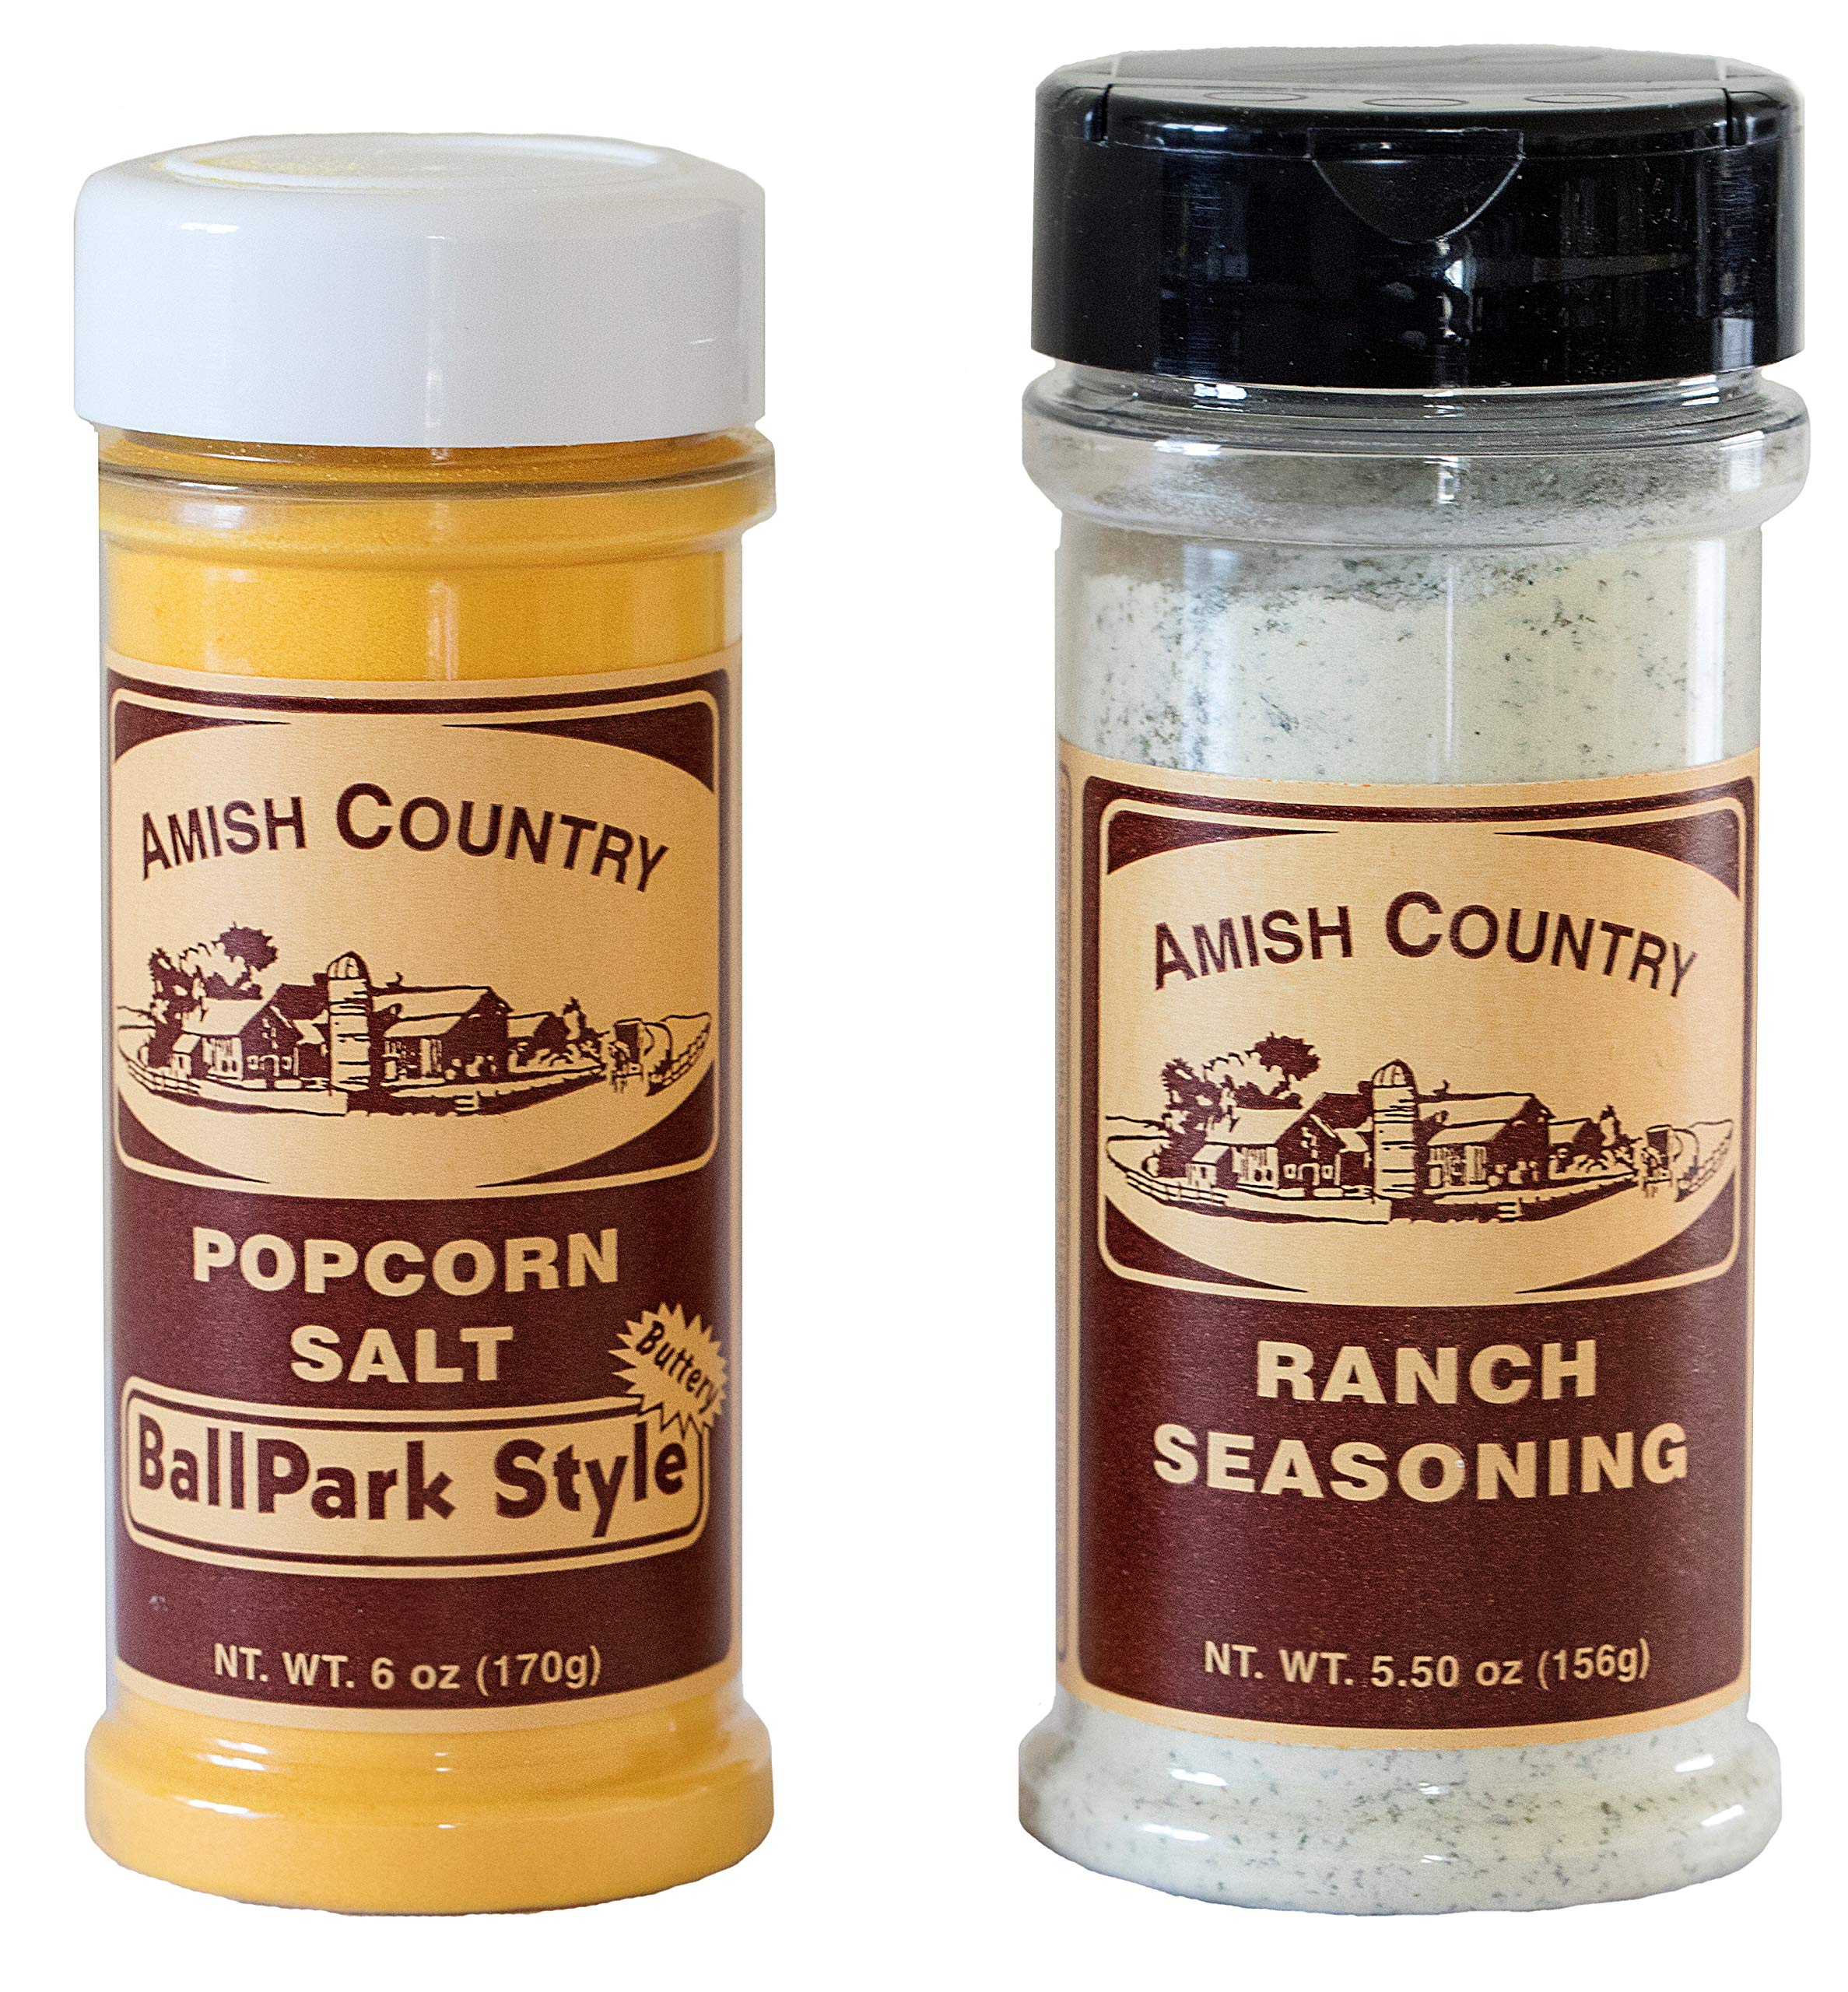 Amish Country Popcorn - BallPark Style ButterSalt (6 Oz) and Ranch (5.5 Oz) Popcorn Seasoning - Old Fashioned with Recipe Guide by Amish Country Popcorn